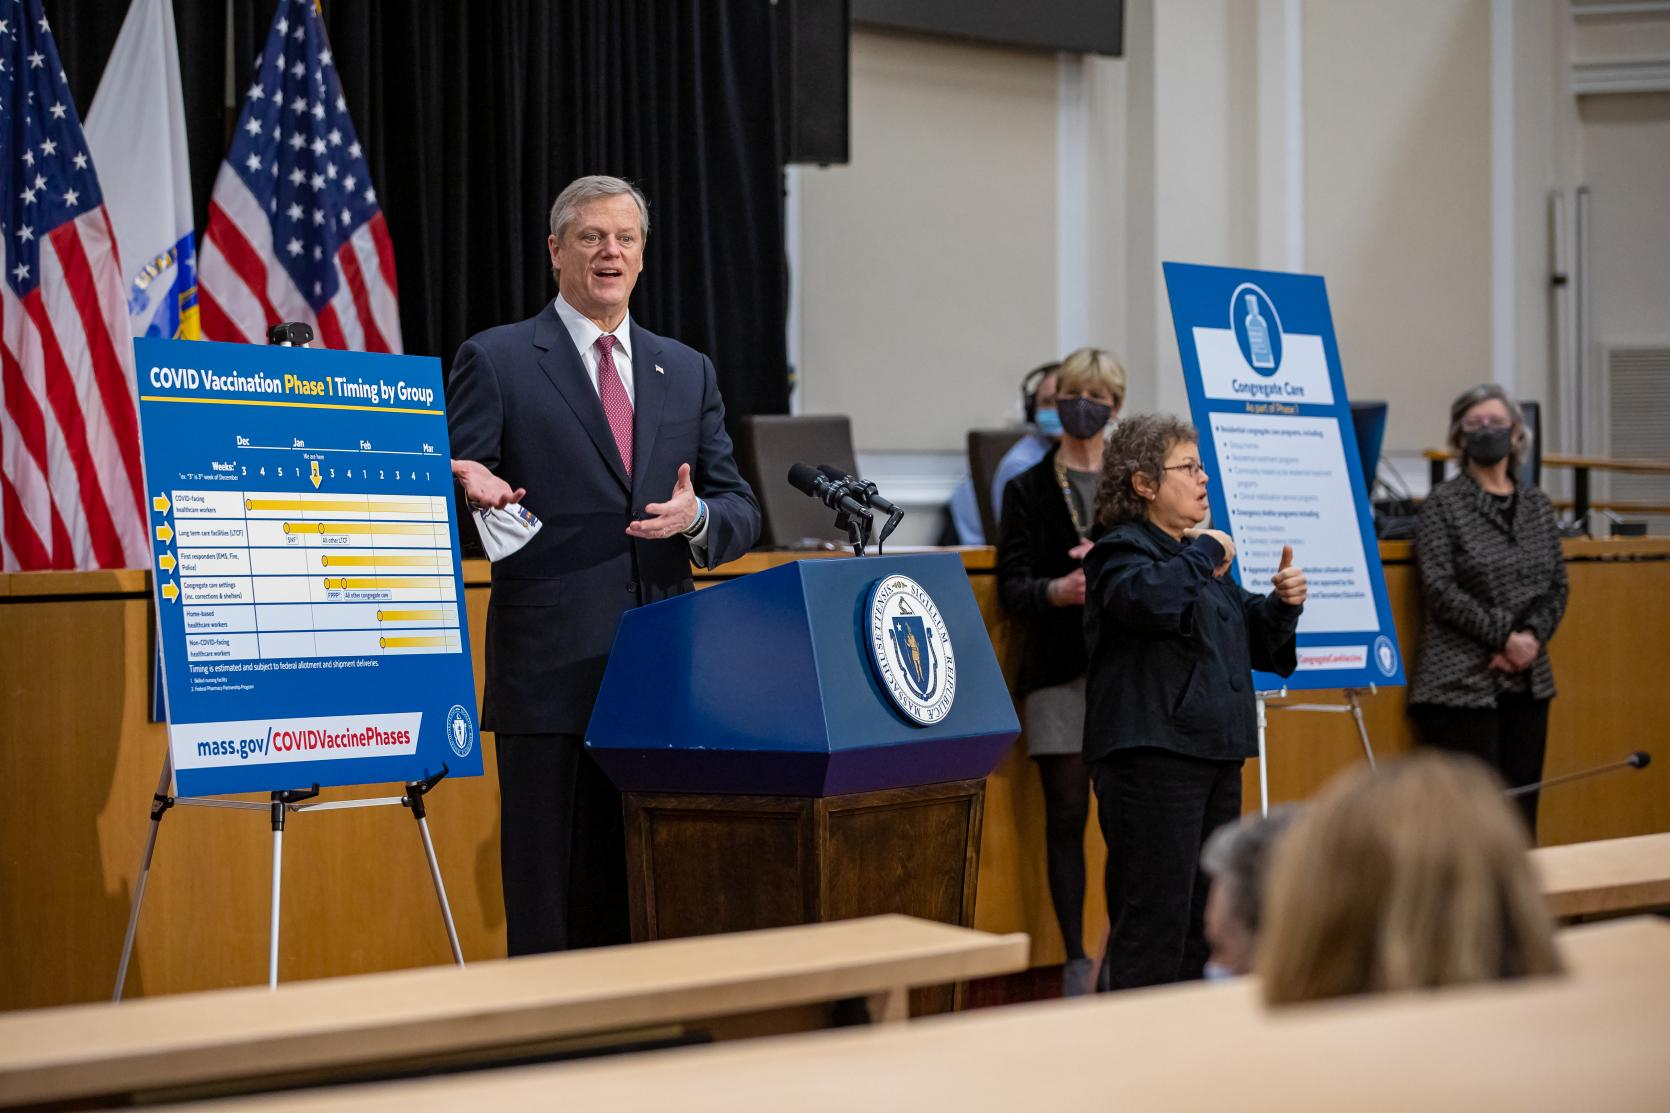 Baker-Polito Administration Announces Plan To Begin Vaccinations for Congregate Care Facilities, Updates to Phase Two